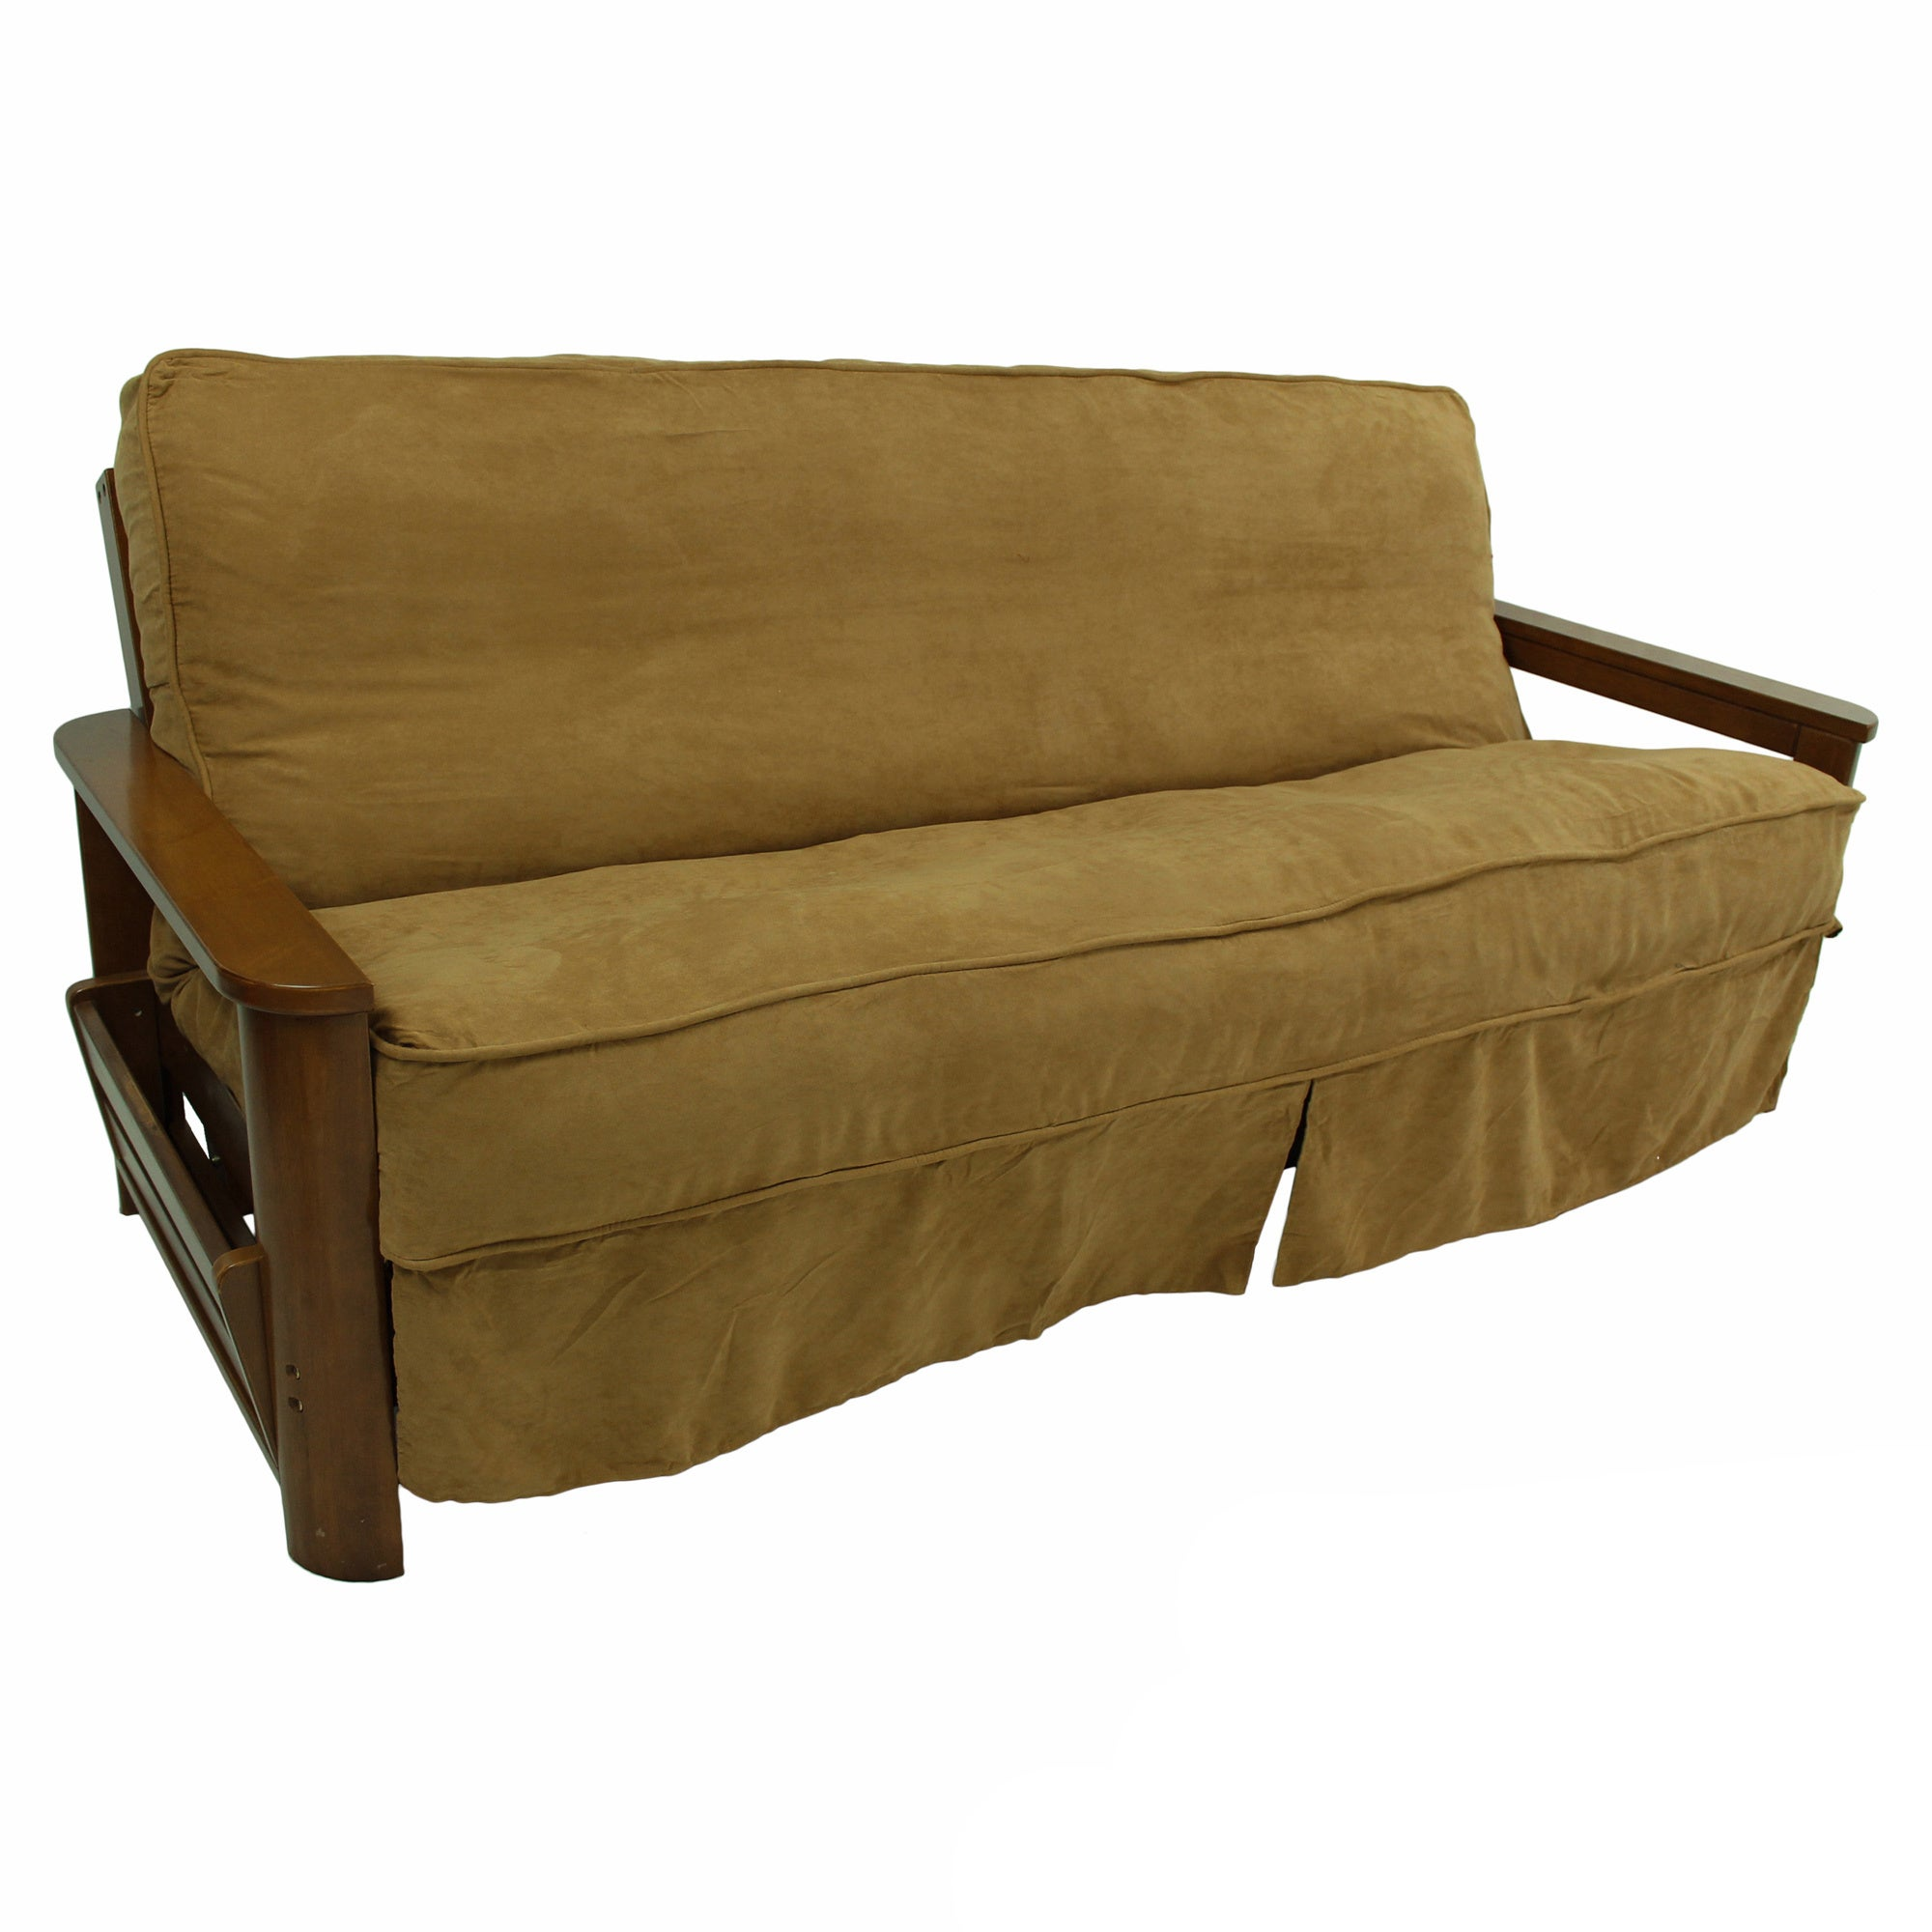 Blazing Needles Premium Microsuede Skirted Futon Slip Cover 55 X 75 On Free Shipping Orders Over 45 Com 8869766